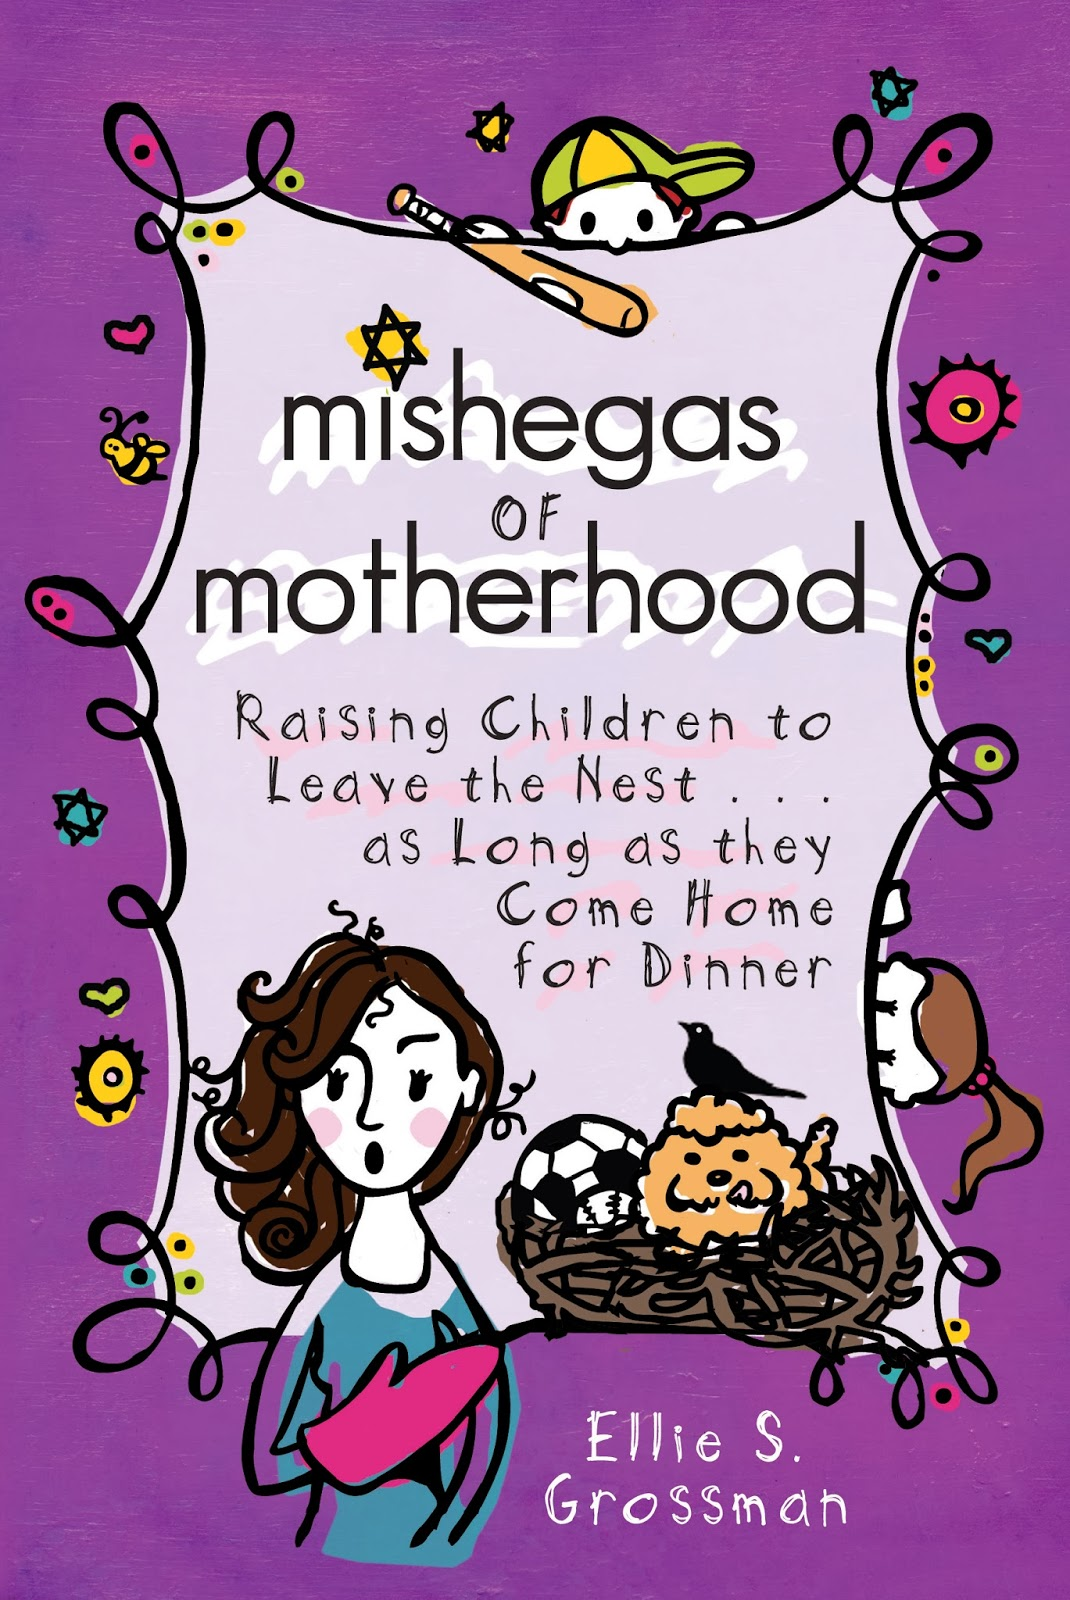 the writers lens ellie s grossman shares parenting humor in mishegas of motherhood this collection of parenting humor essays is written in the tradition of erma bombeck a jewish twist mishegas of motherhood is